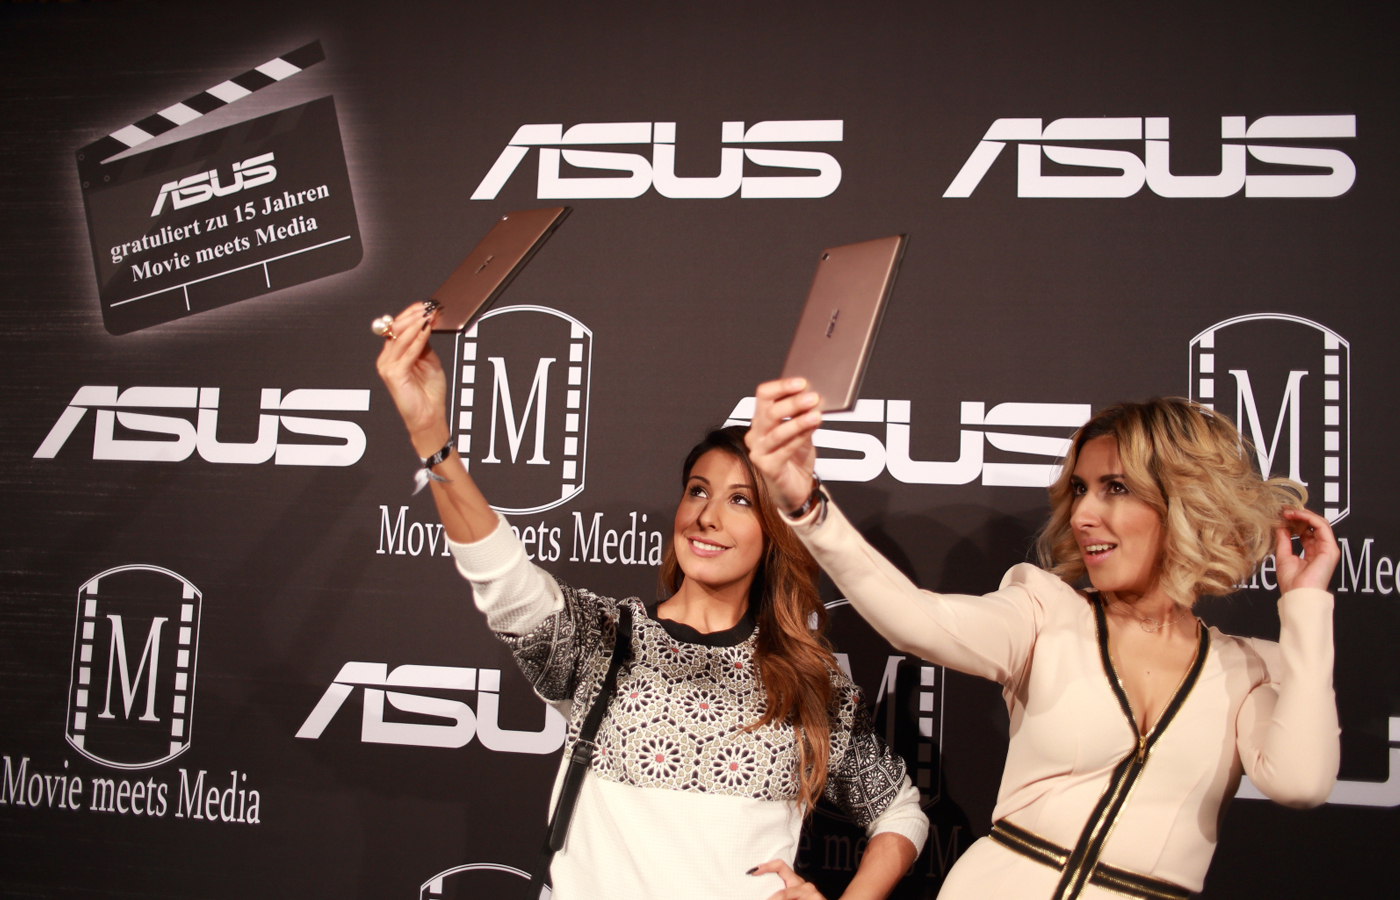 ASUS – Movie meets media